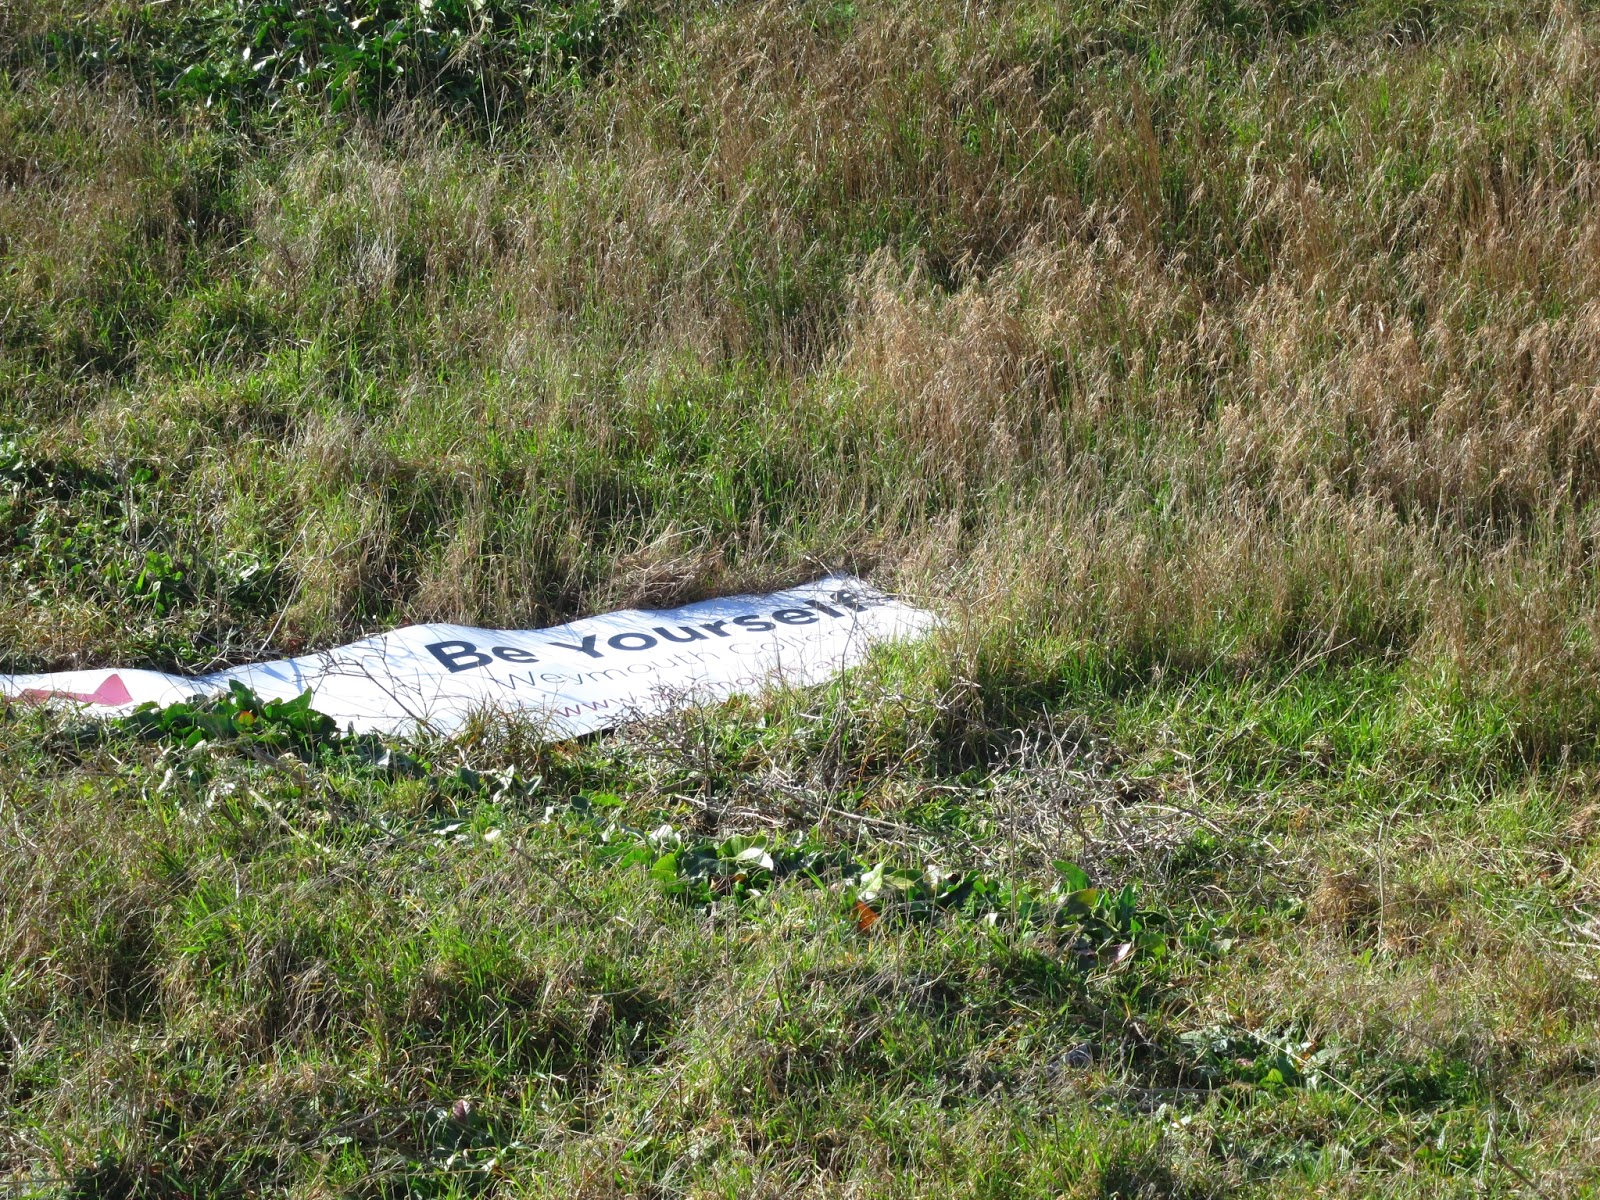 Banner saying 'Be Yourself' abandoned in rough grass.